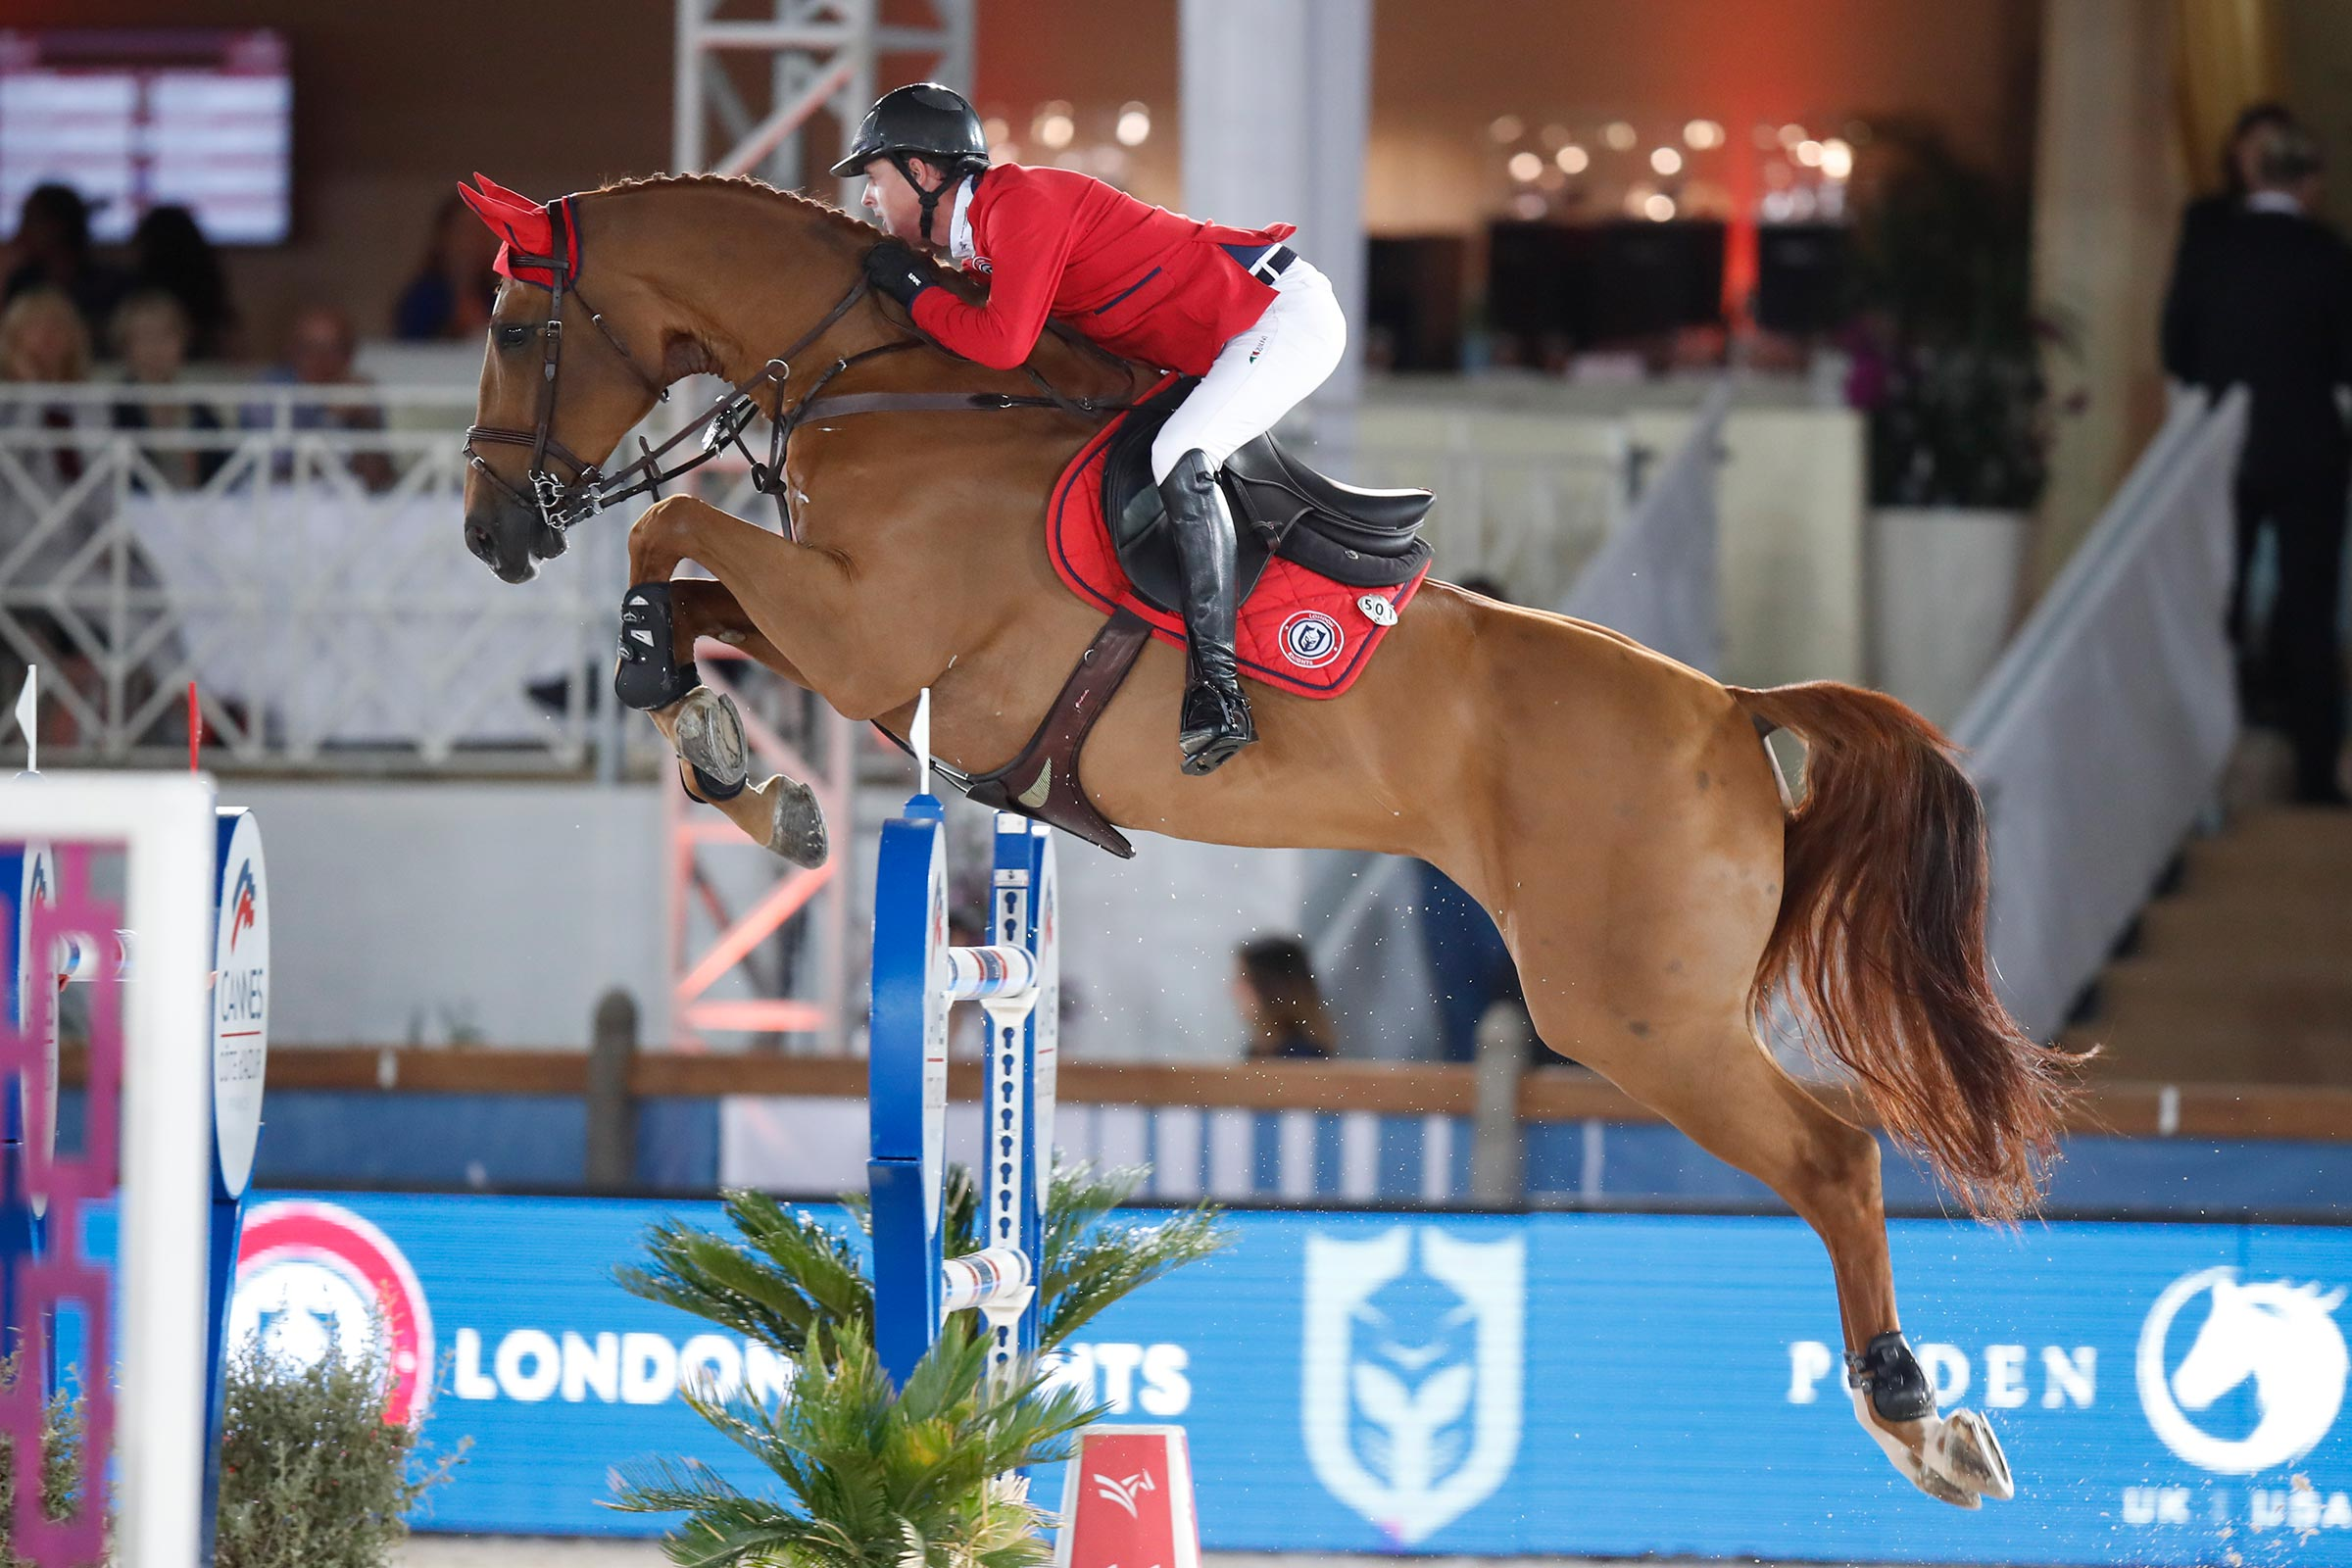 Team London Knights - Ben Maher (GBR) on Explosion W ph.Stefano Grasso/GCL CANNES 2019 DOWNLOAD